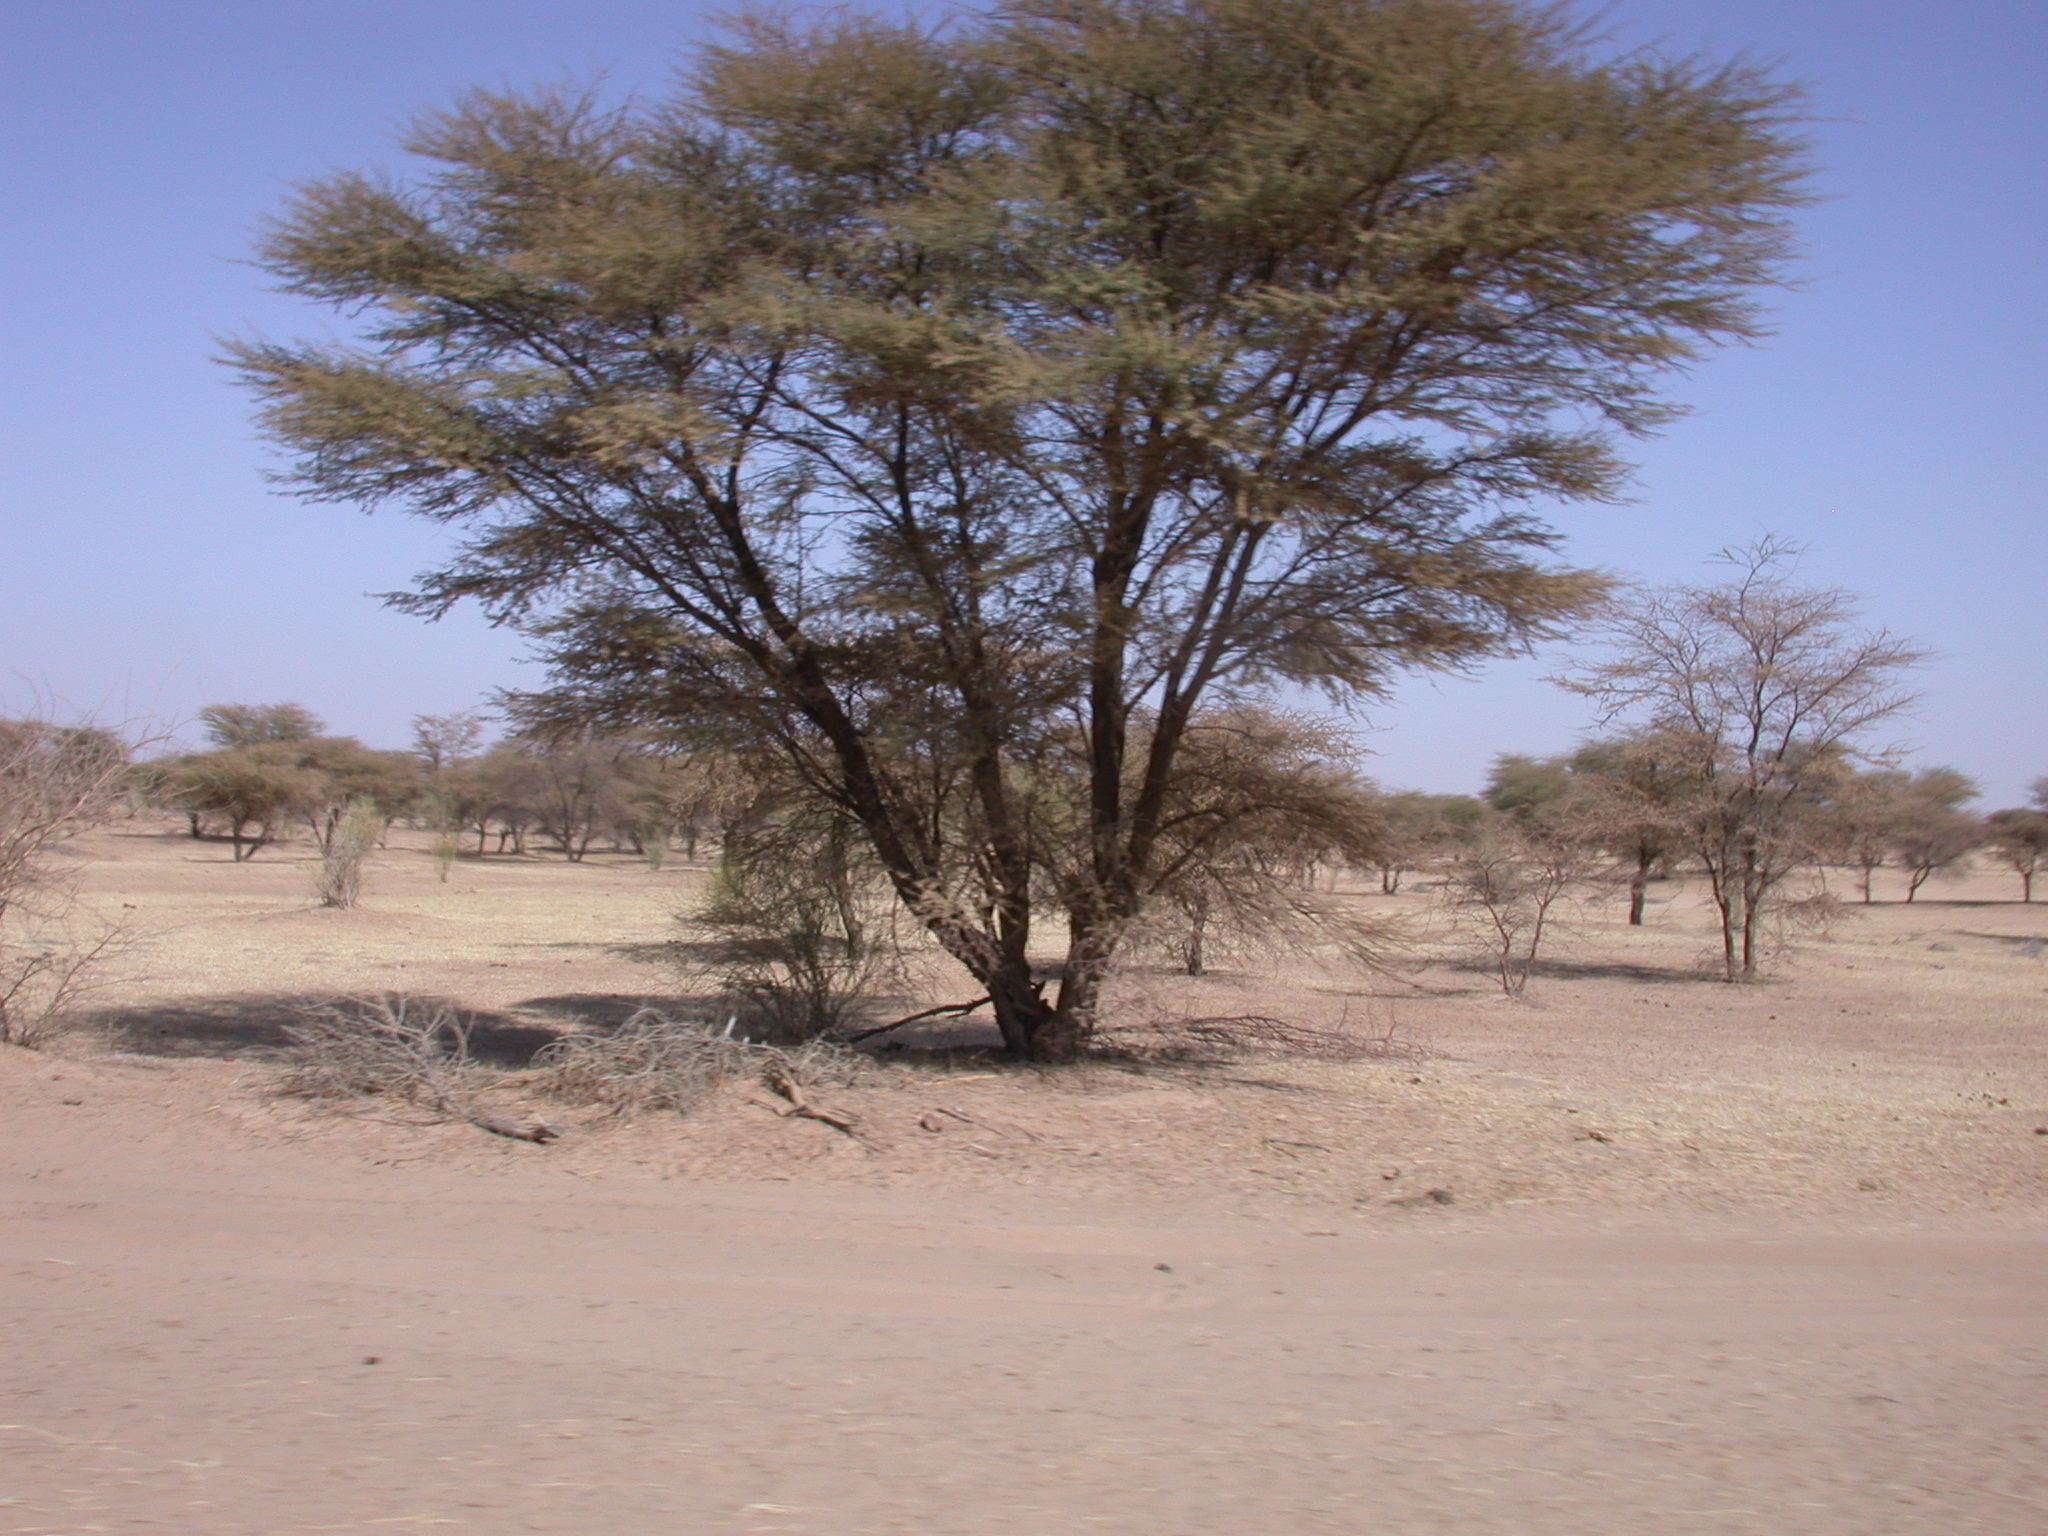 Terrain on Route From Bamako to Timbuktu, Mali